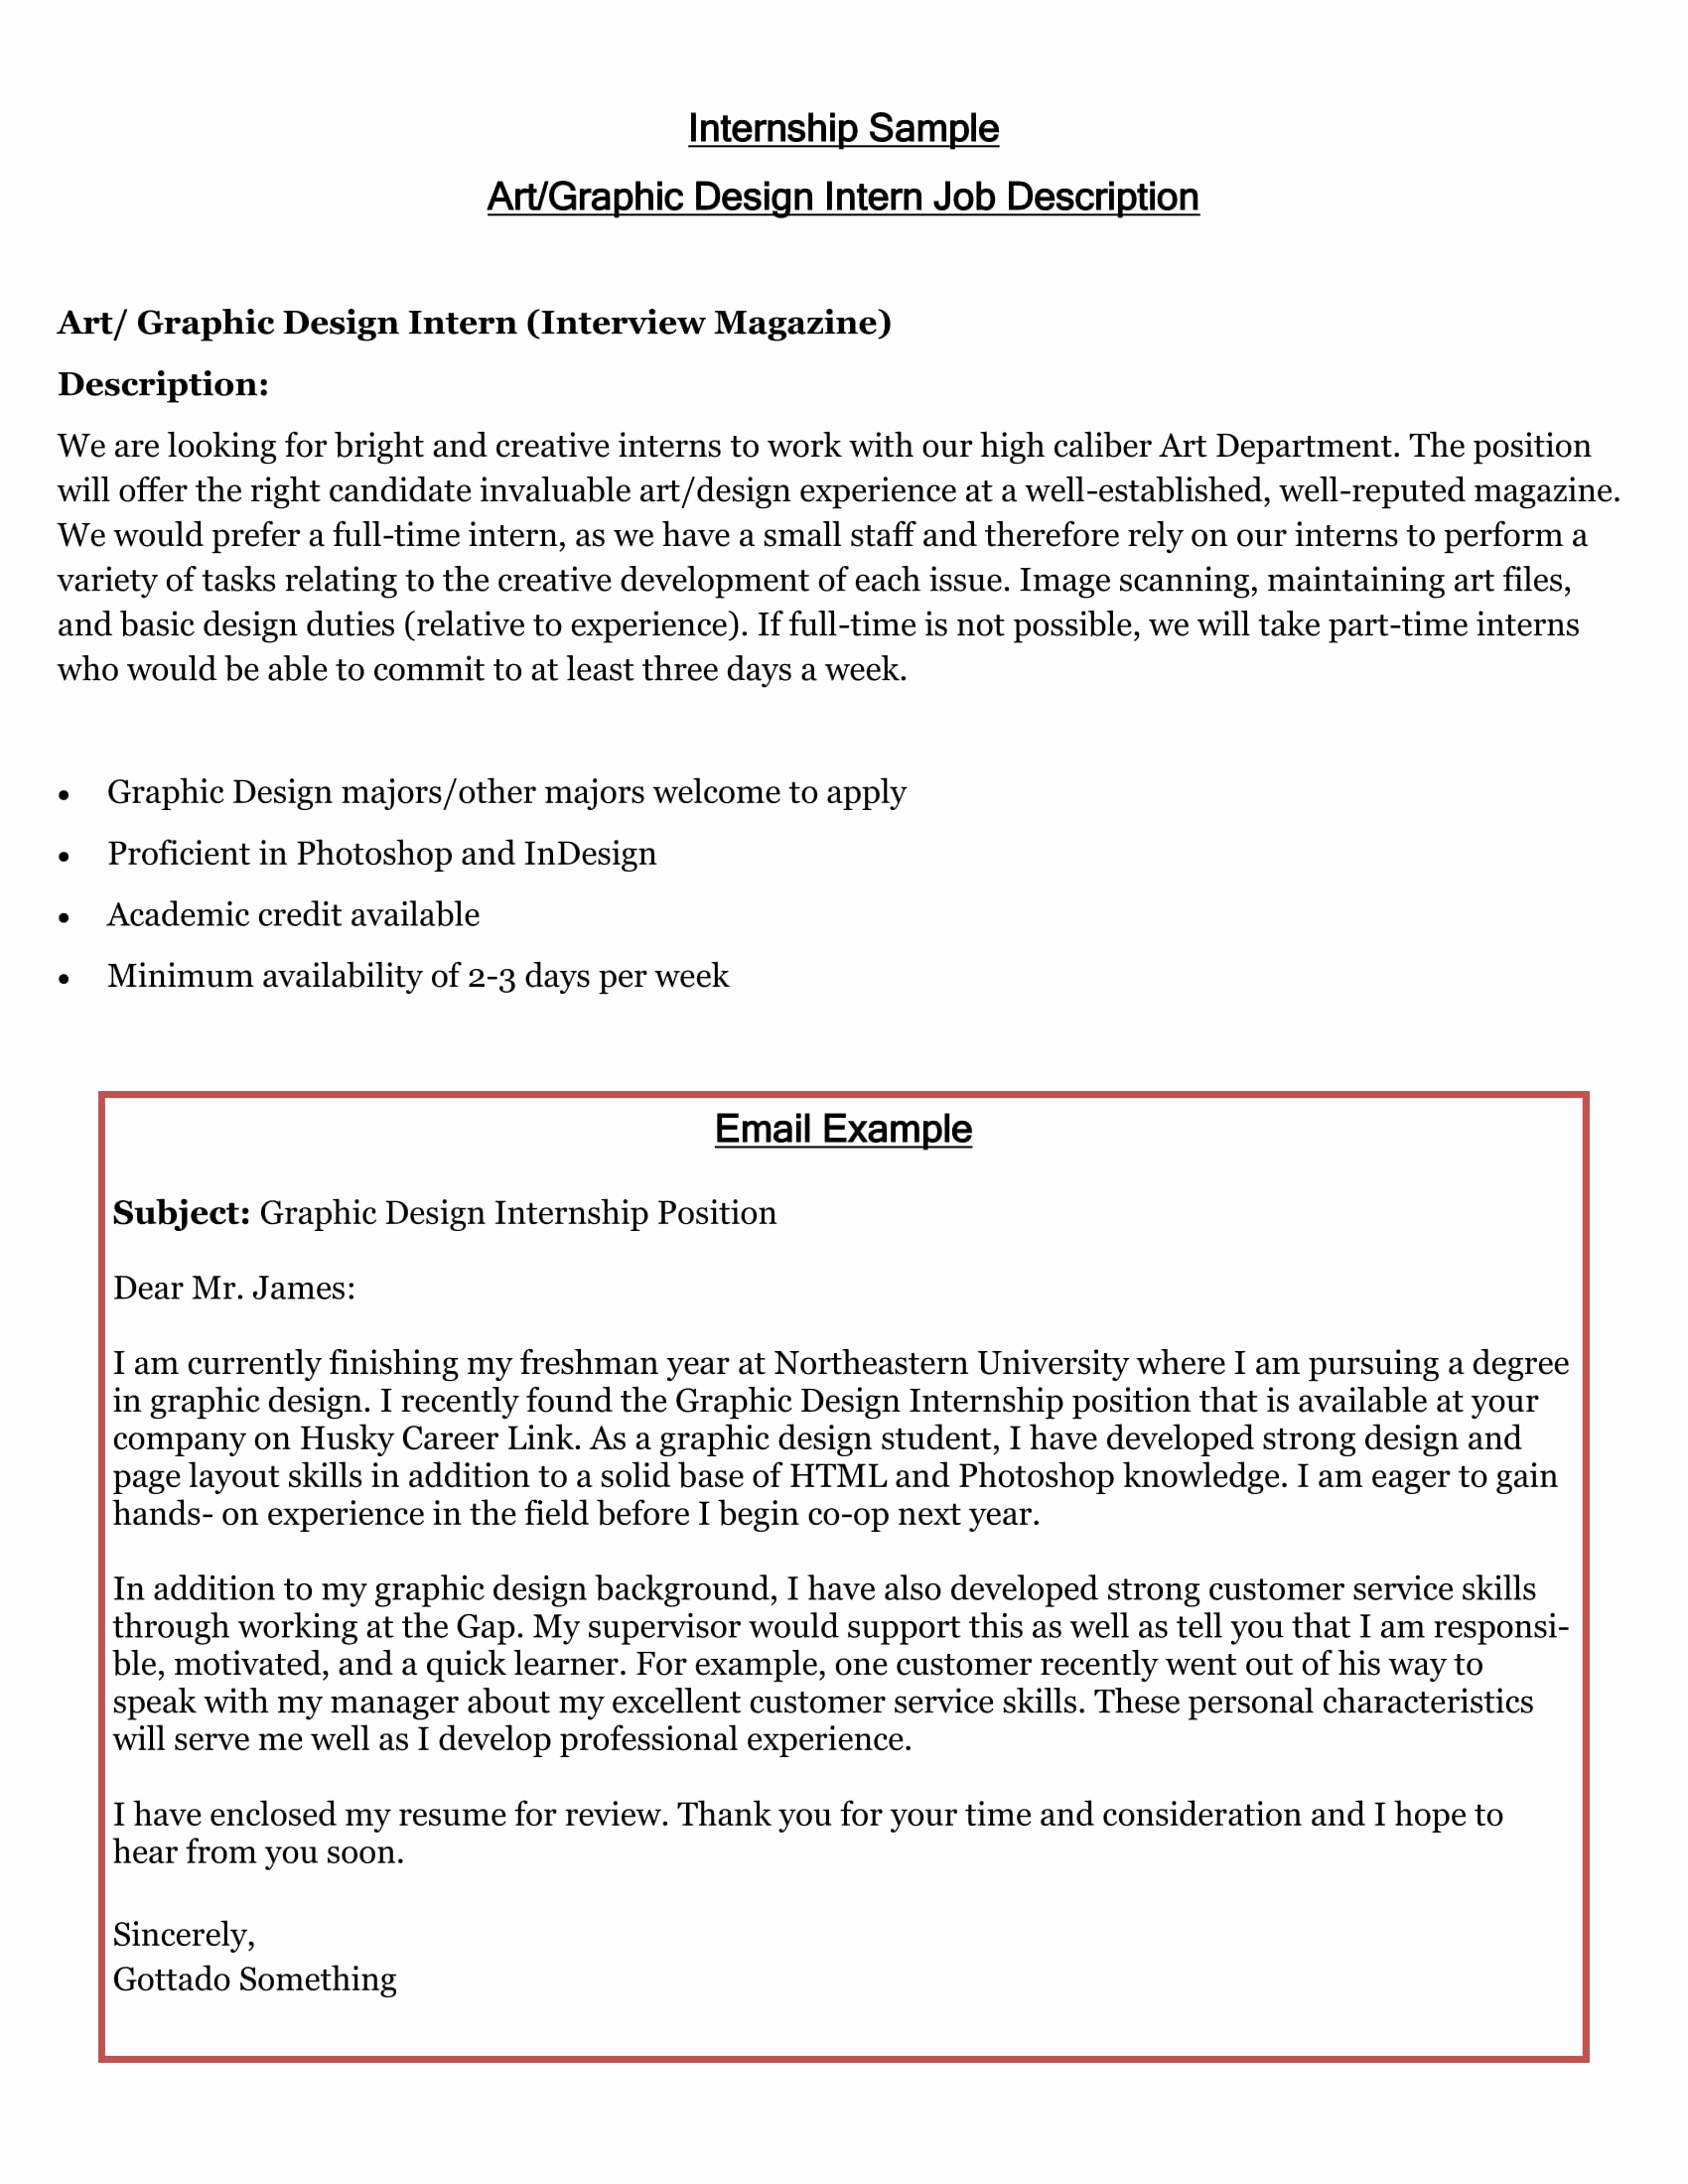 Internship Cover Letter Sample Beautiful 16 Best Cover Letter Samples for Internship Wisestep